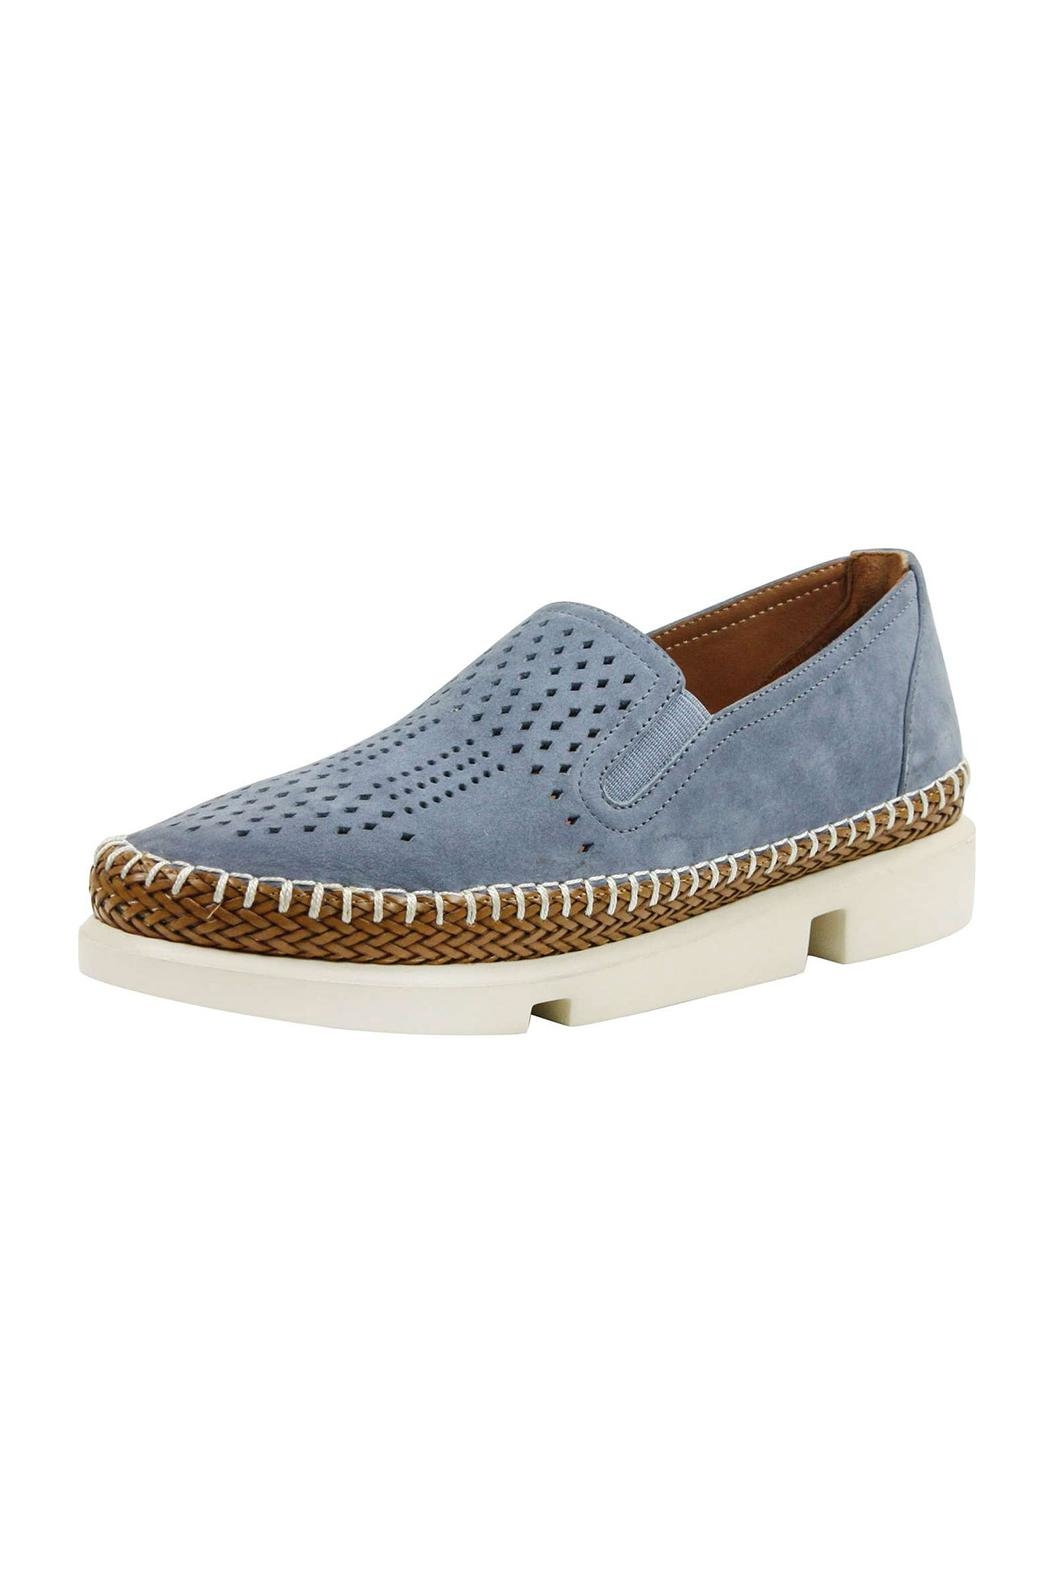 L'Amour Des Pieds Stazzema Slip-On - Front Cropped Image